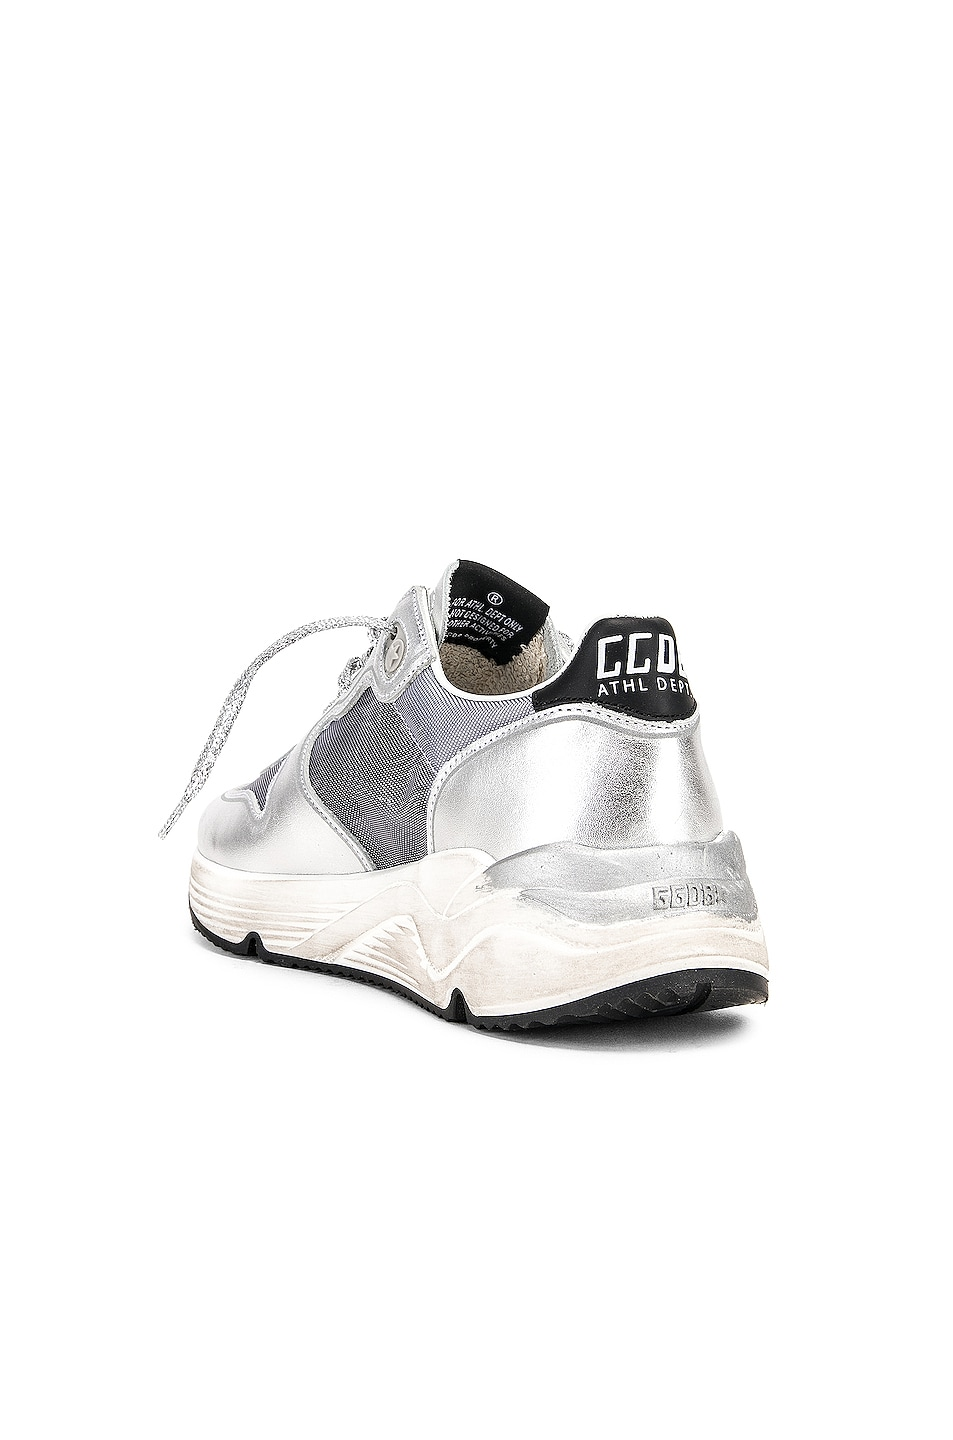 Image 3 of Golden Goose Running Sole Sneakers in Silver Net & Black Star